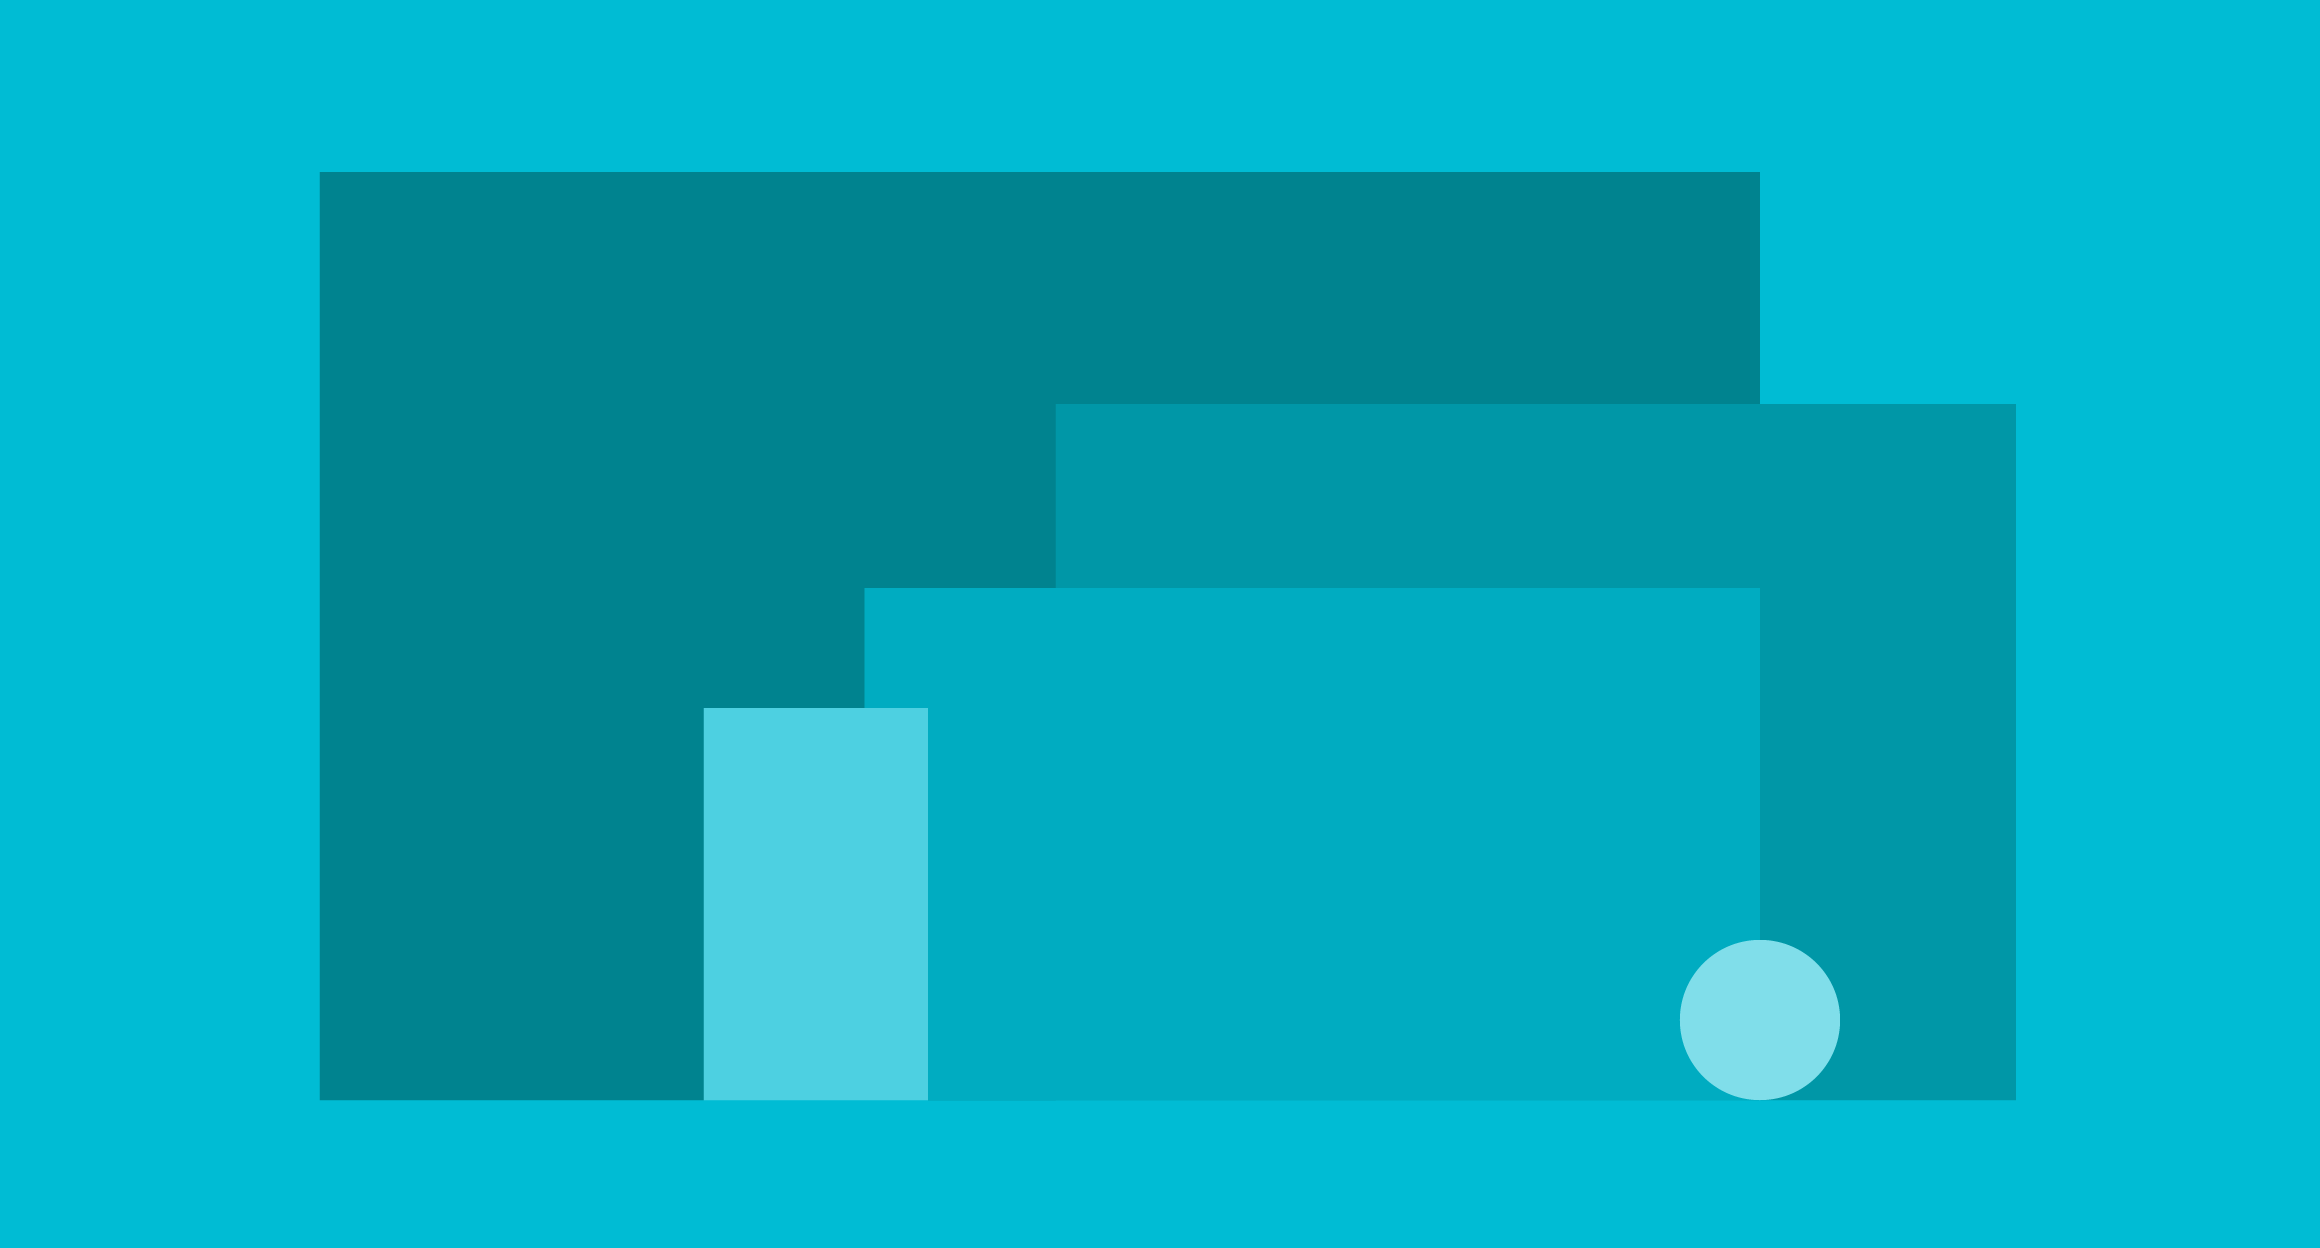 Google Material design & Apple iOS Human Interface Guidelines